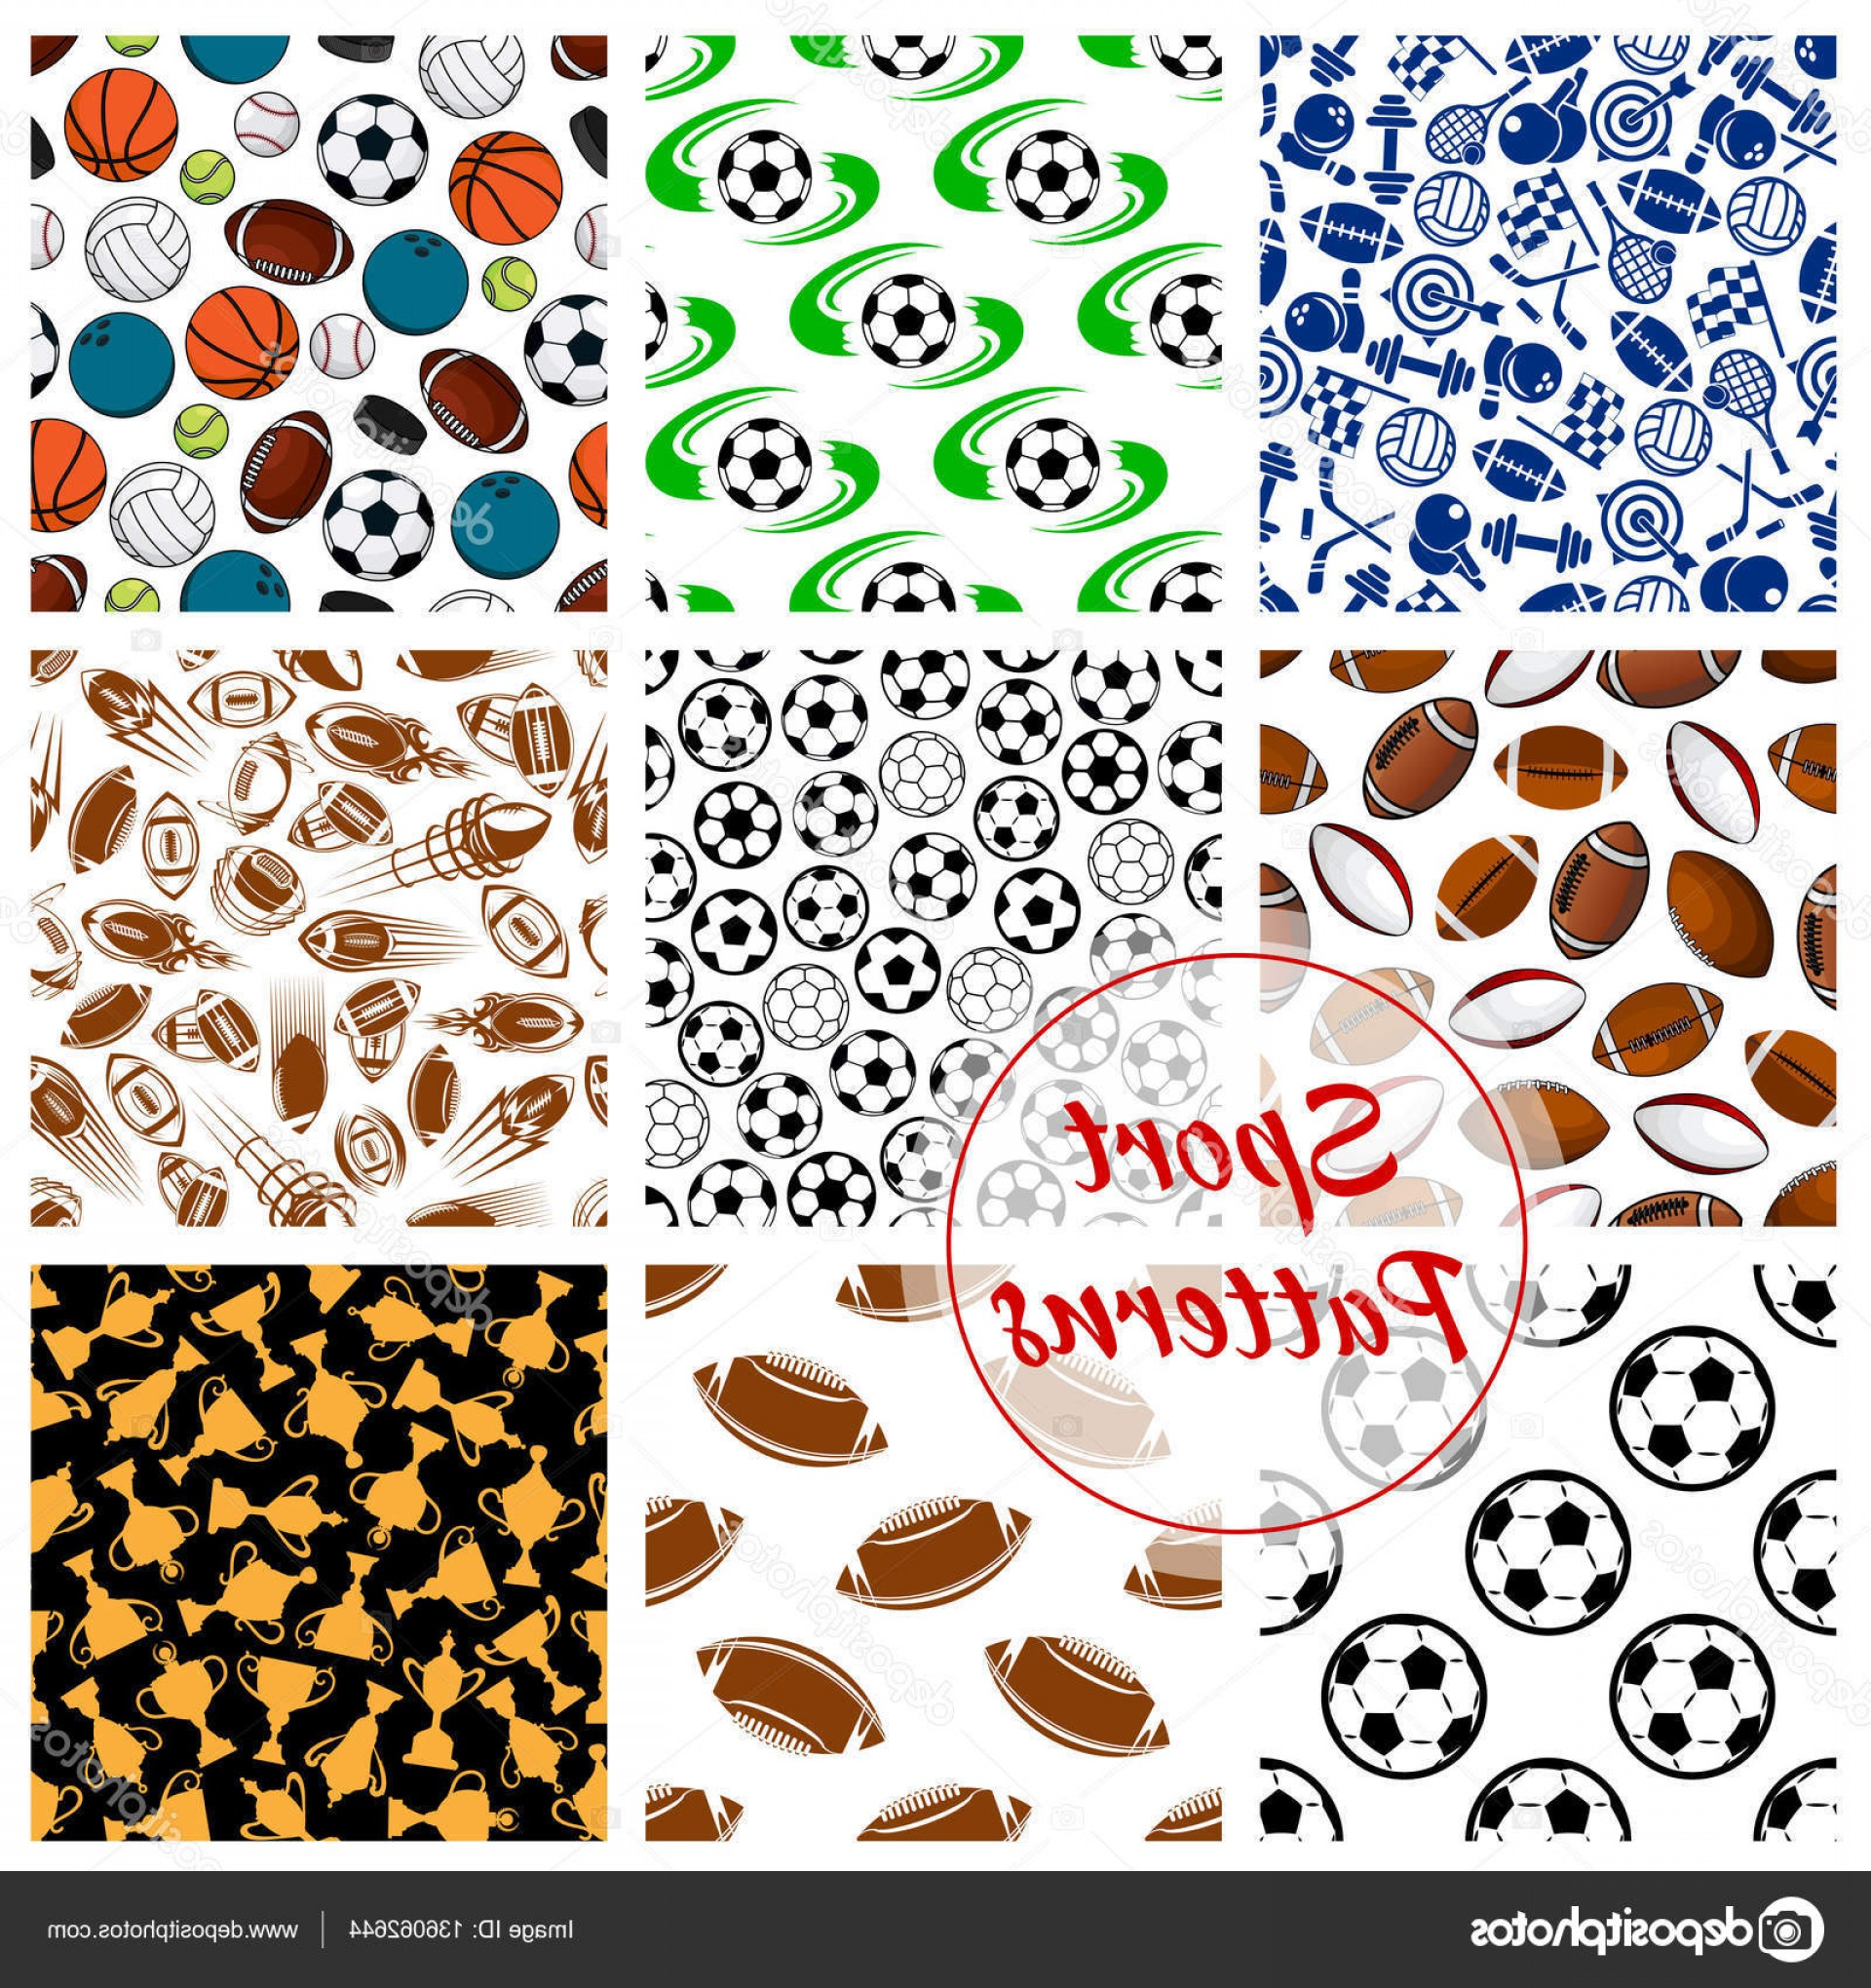 Hockey Vector Patterns: Stock Illustration Sport Balls Fitness Items Seamless